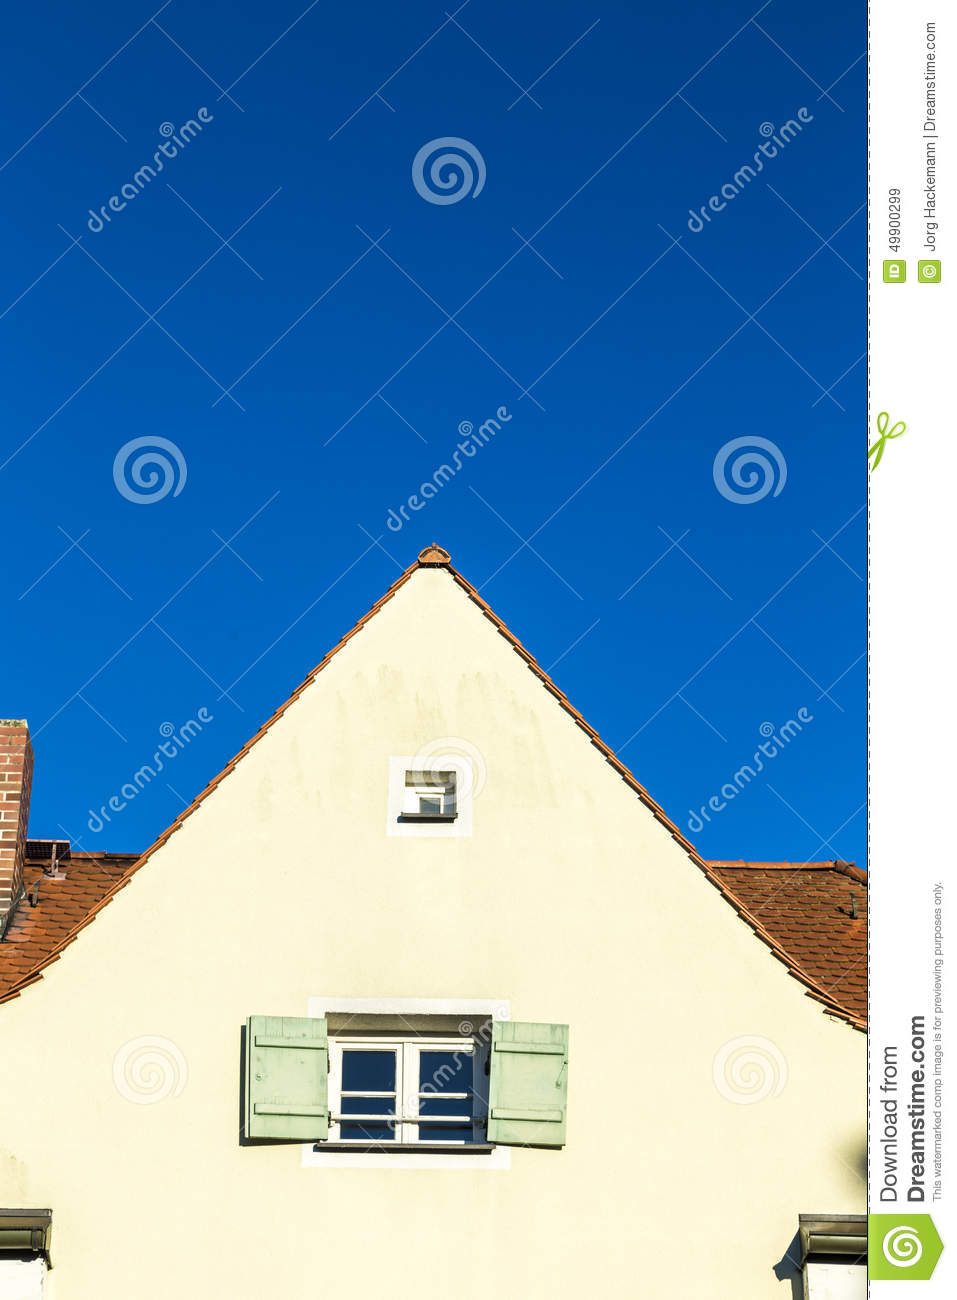 Gable with window